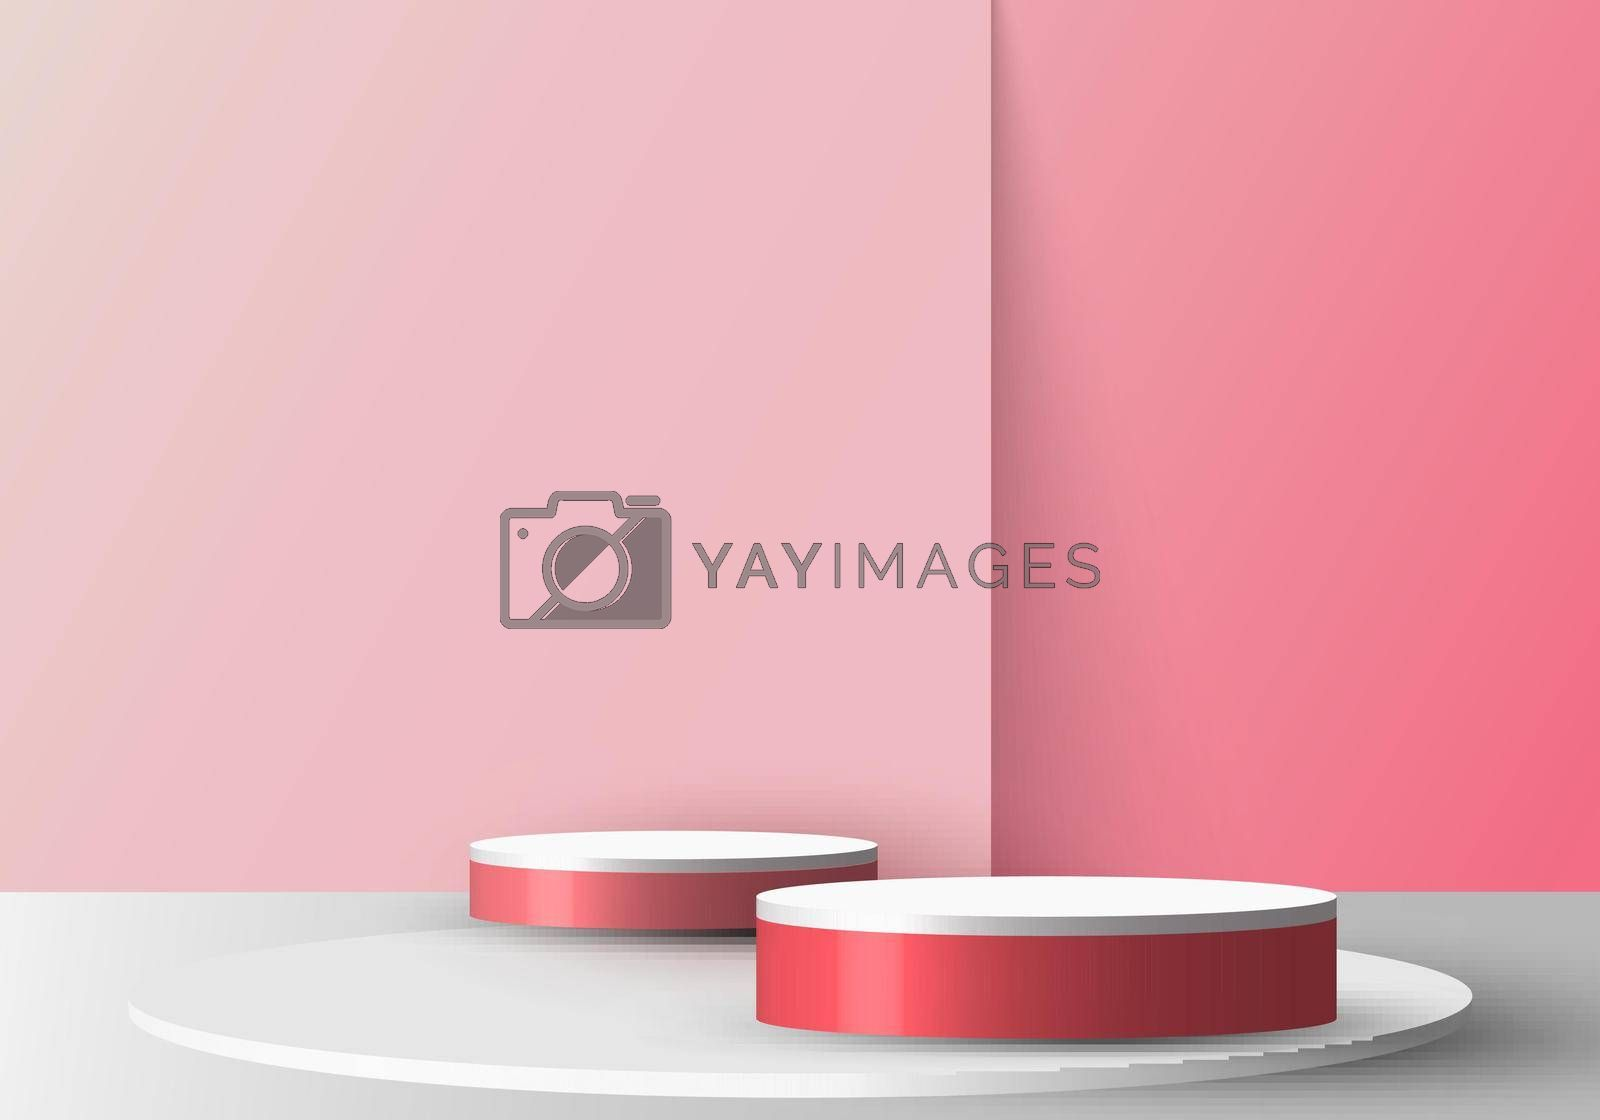 3D realistic empty red and white round pedestal mockup on soft pink backdrop. Stage floor for your graphic. Studio room showcase of modern interior design. Vector illustration